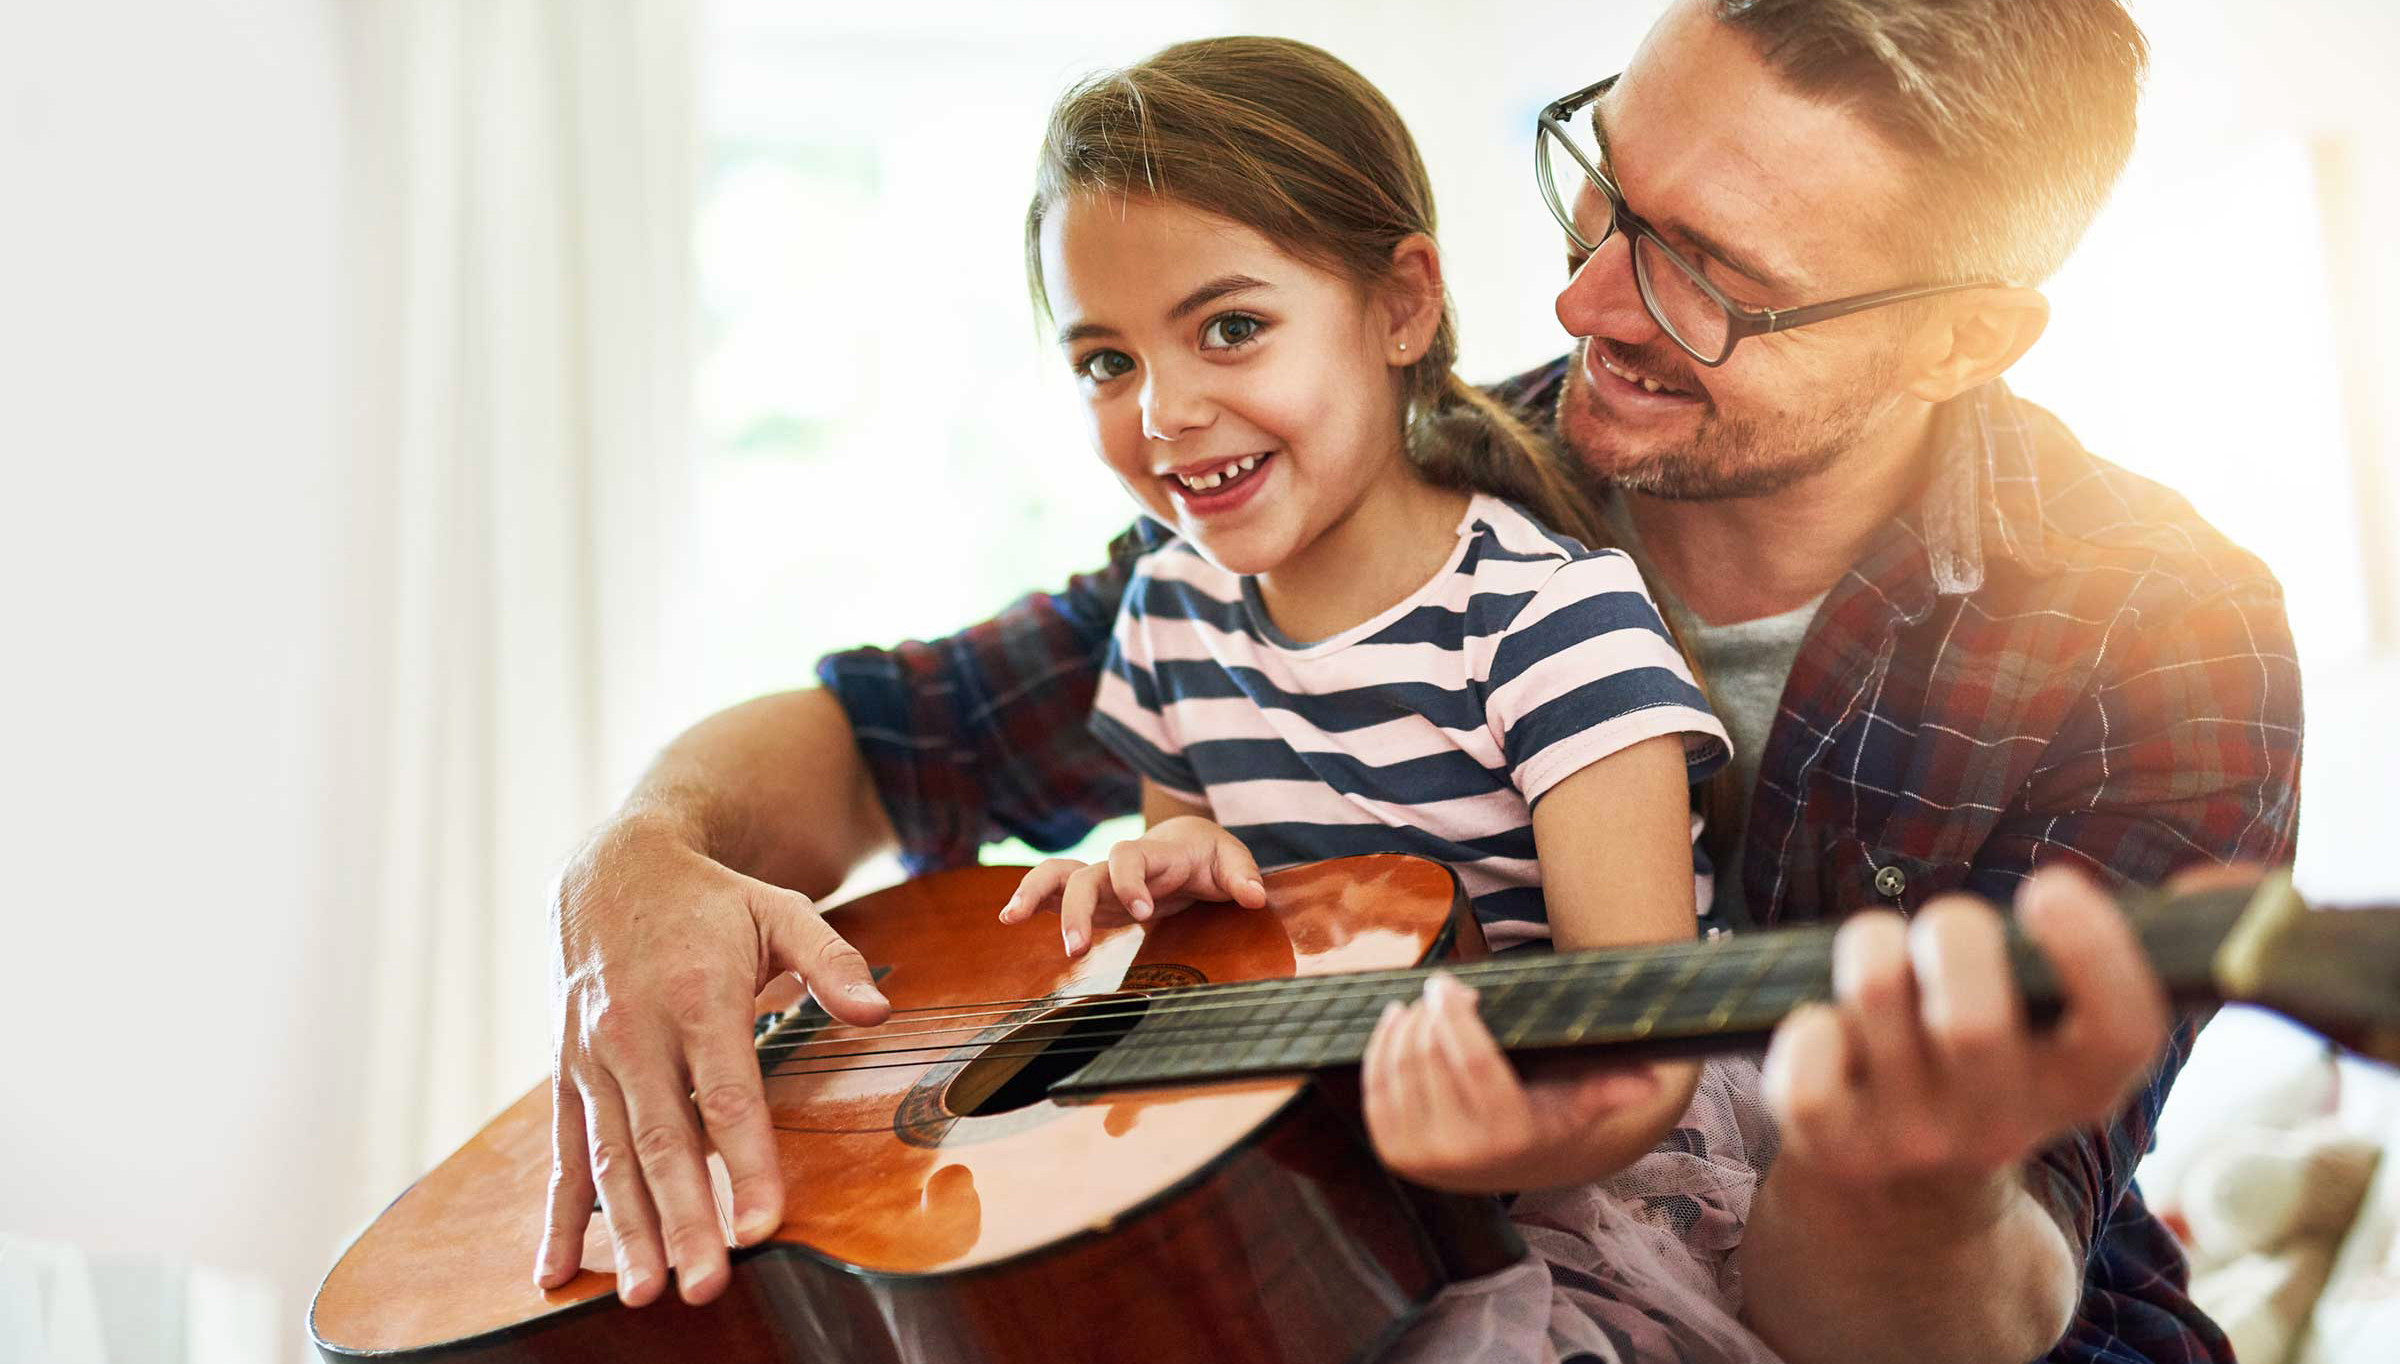 Professional or Recreational Music Lessons – What's Best for Your Child?